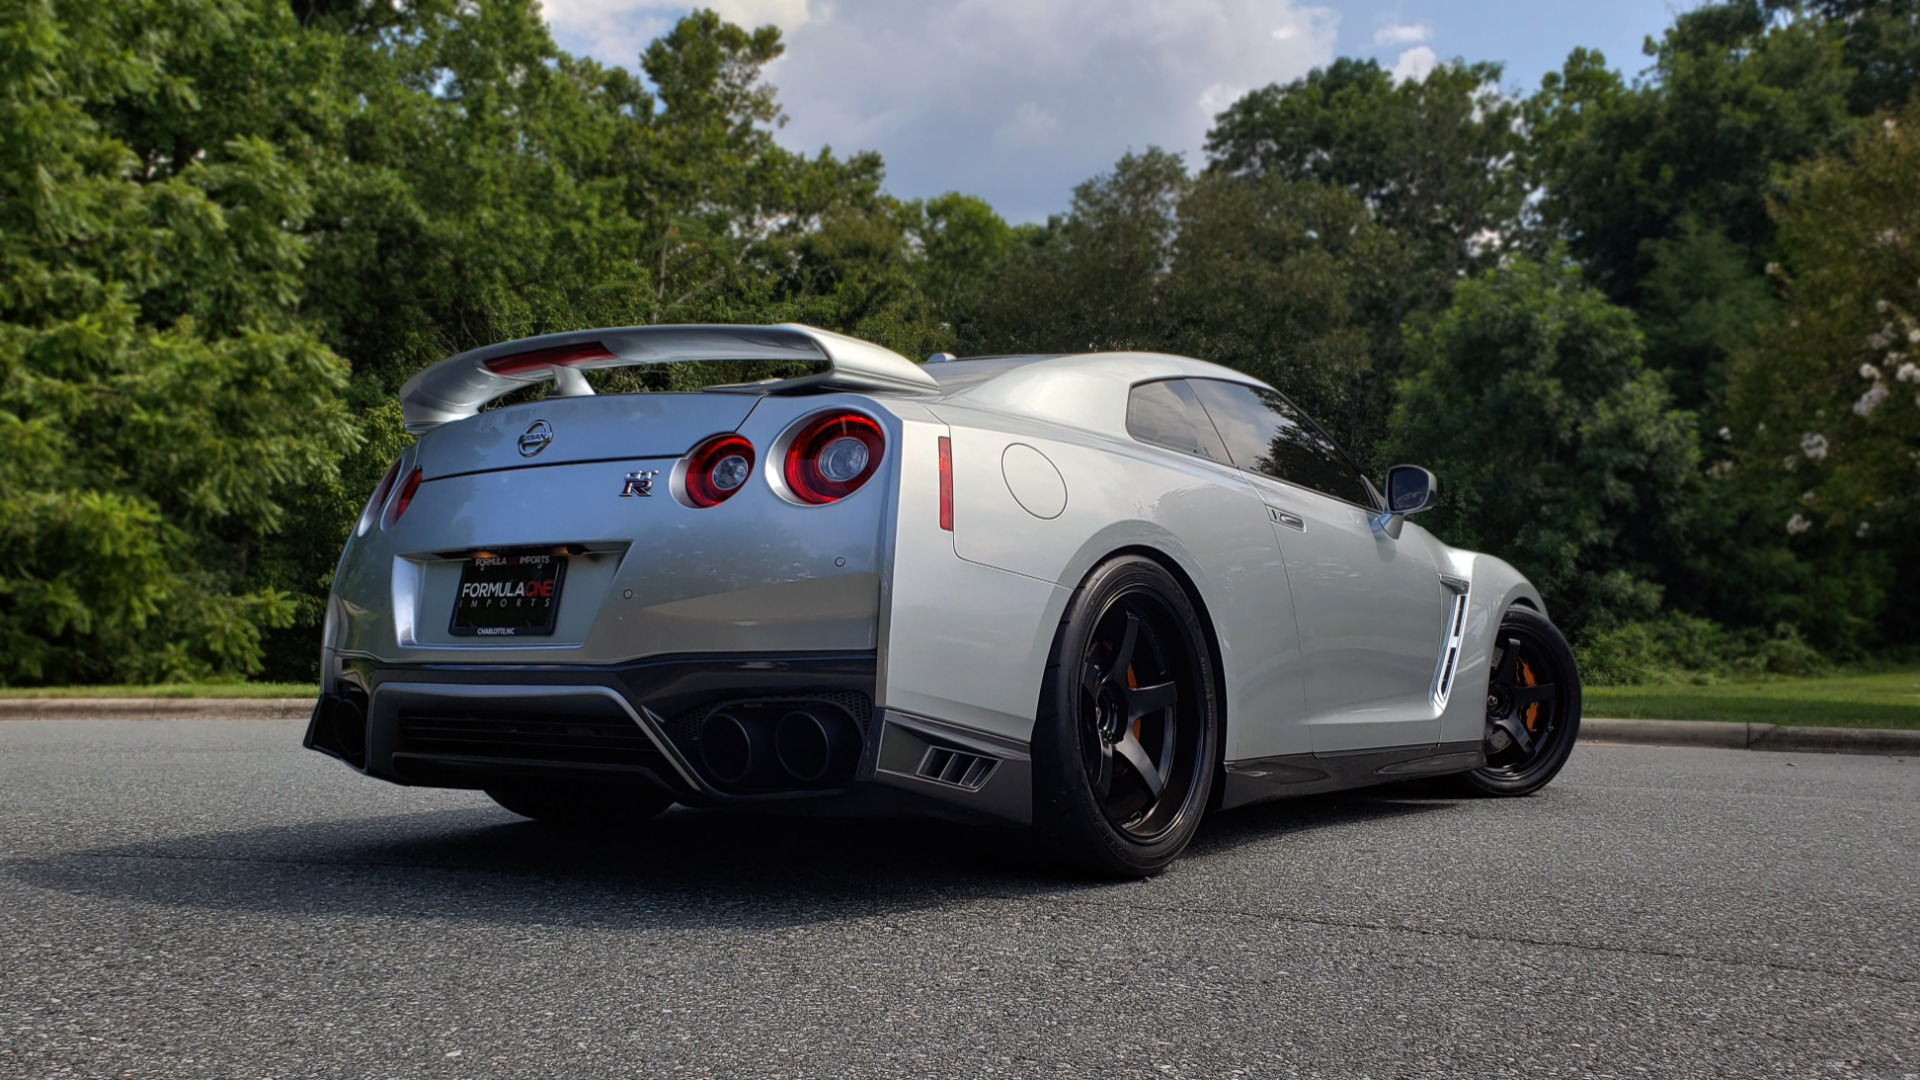 Used 2018 Nissan GT-R PREMIUM / NAV / BOSE / REARVIEW / CUSTOM WHEELS / COIL OVER SHOCKS / TUNED for sale Sold at Formula Imports in Charlotte NC 28227 12